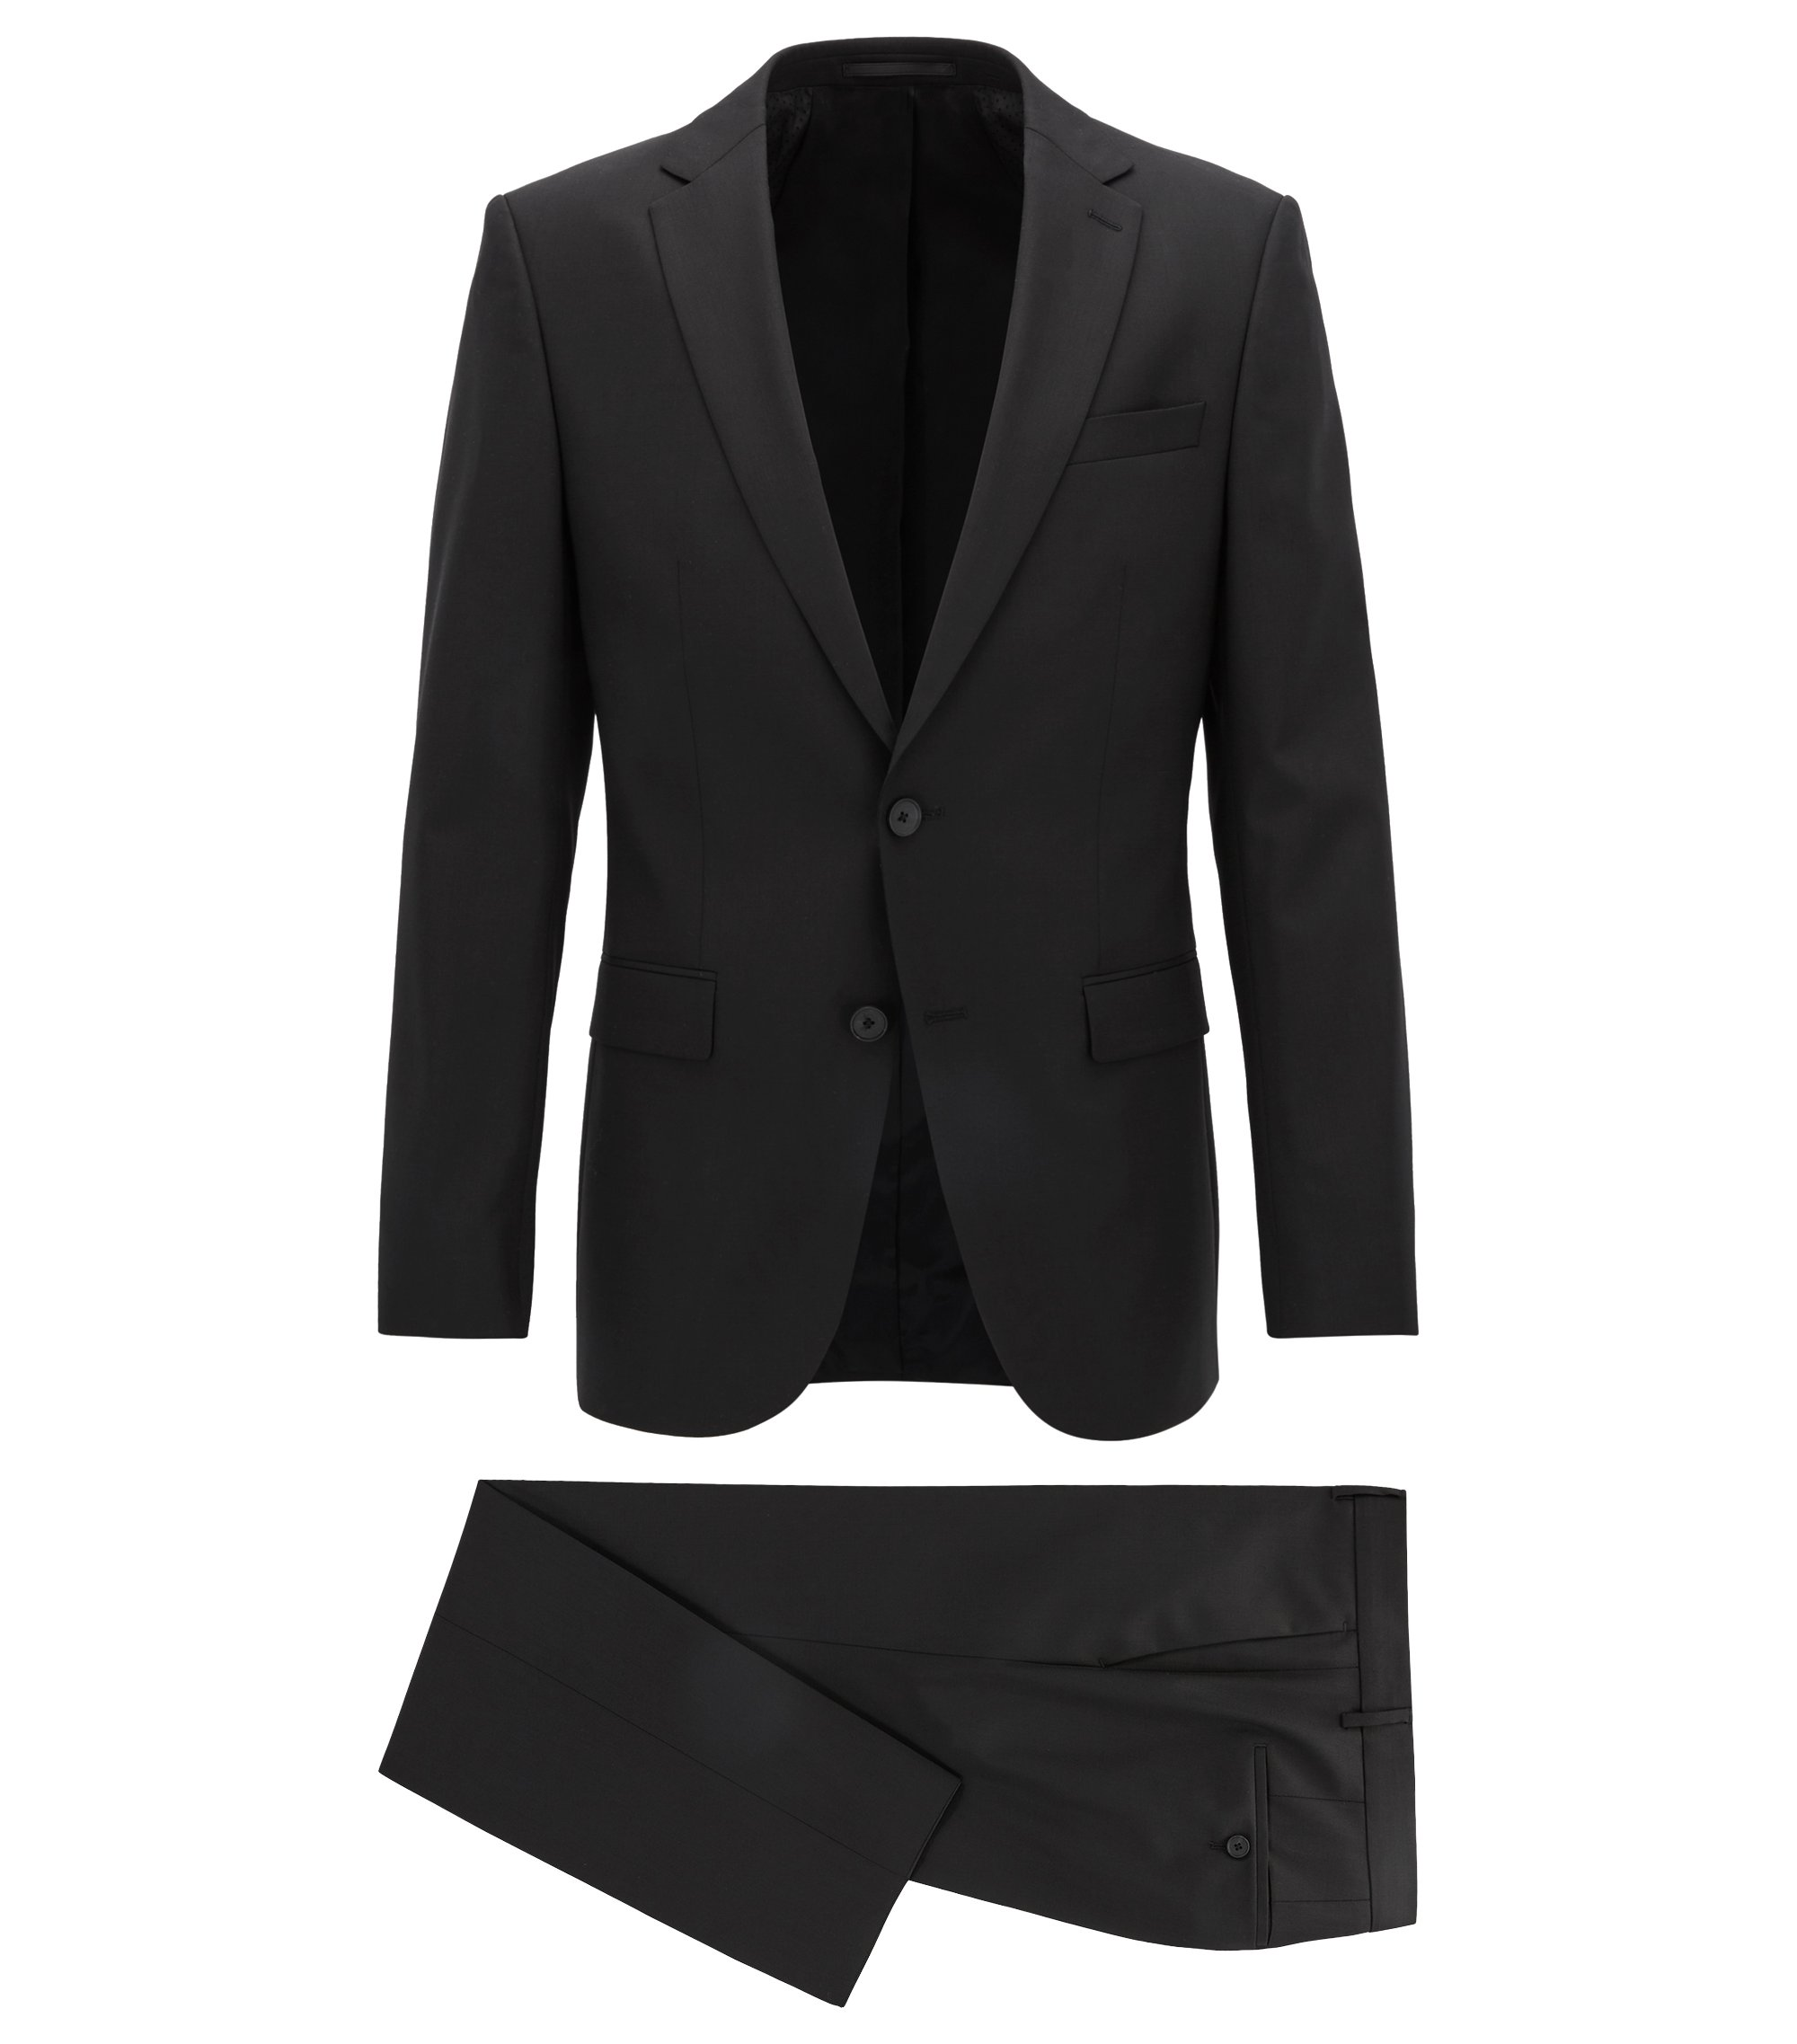 Mercedes-Benz Virgin Wool Blend Suit, Slim Fit | Nobar/Beil MB, Black